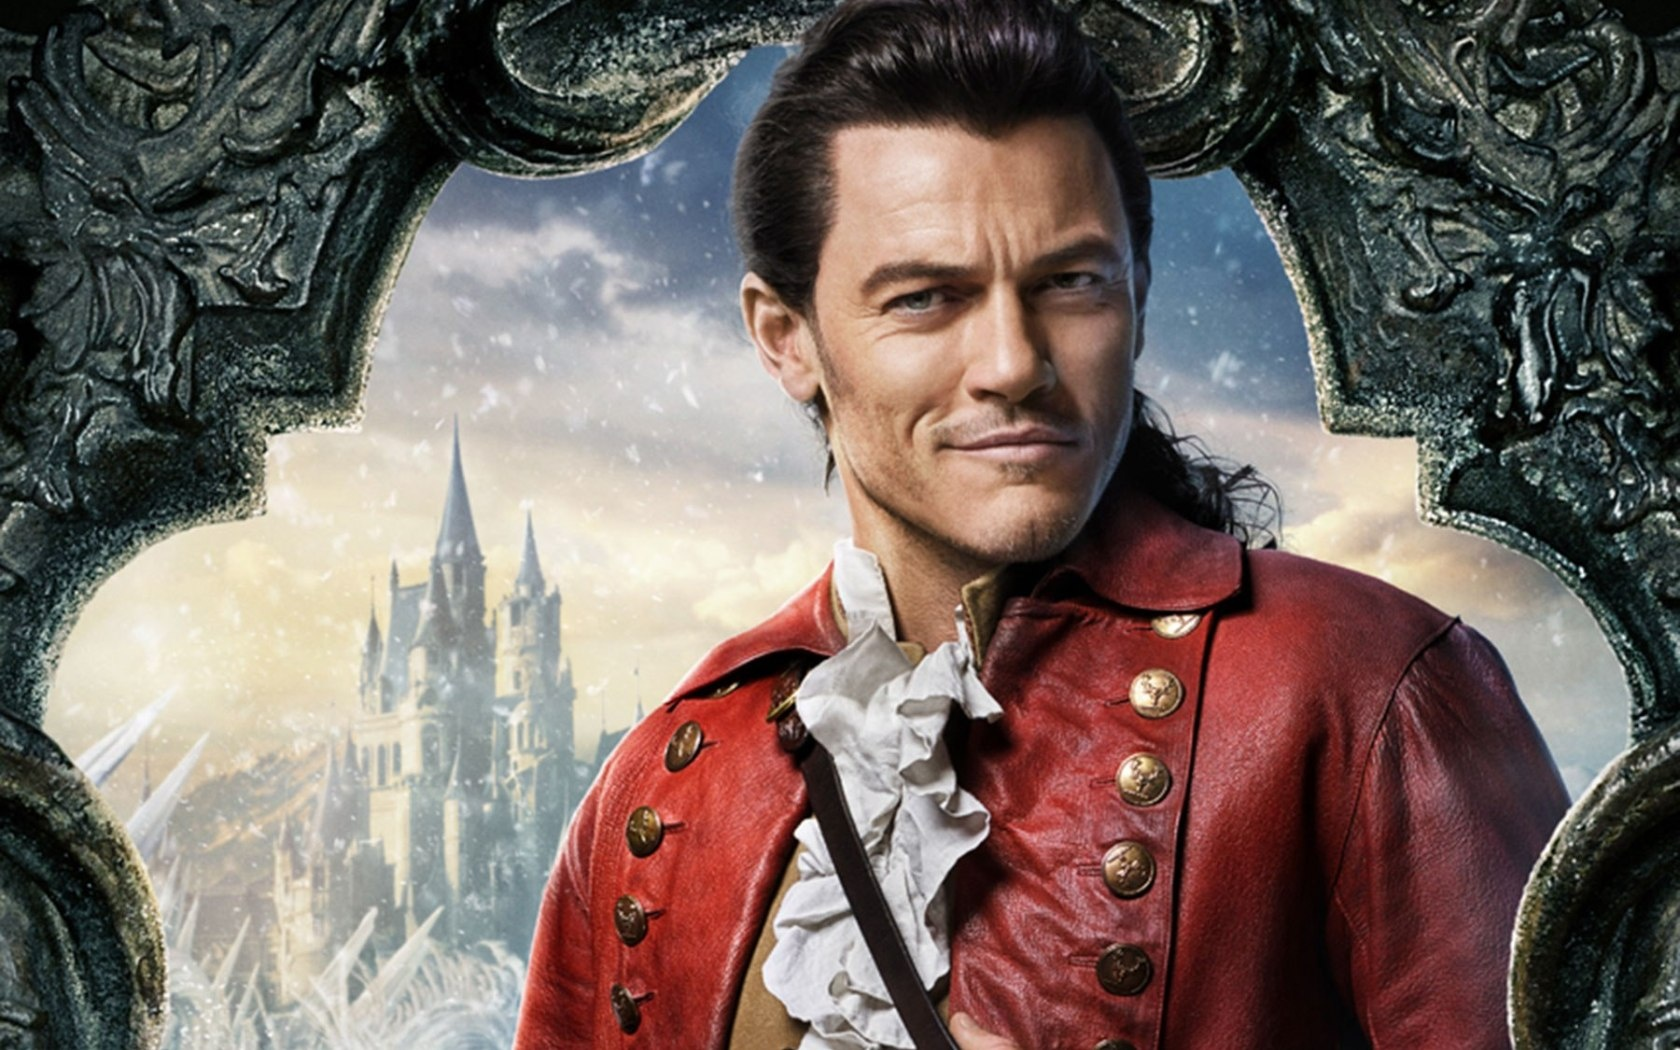 luke-evans-as-gaston-wallpaper.jpg